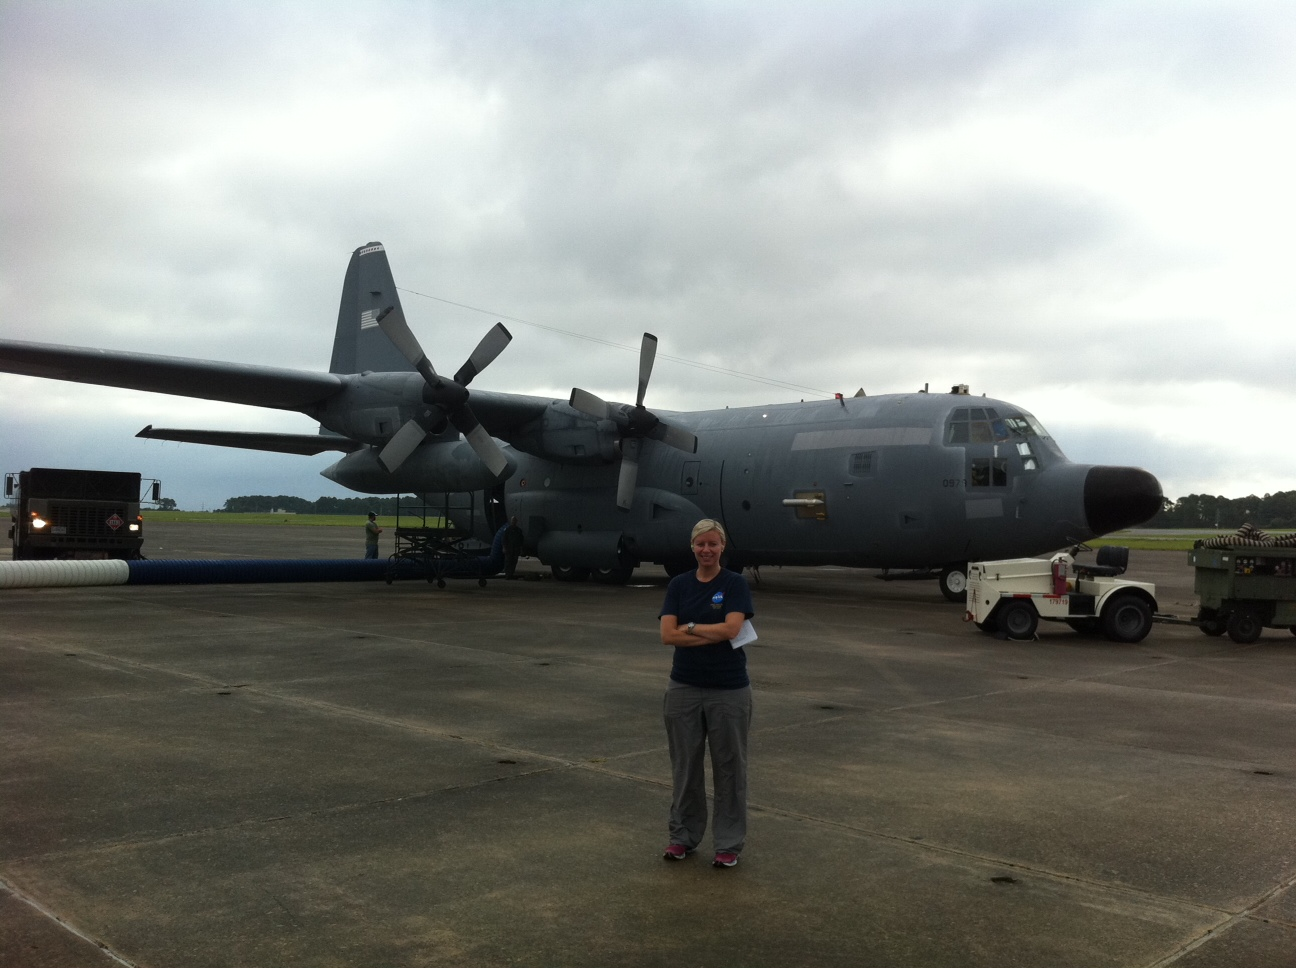 Christy Hansen in front of NASA C-130